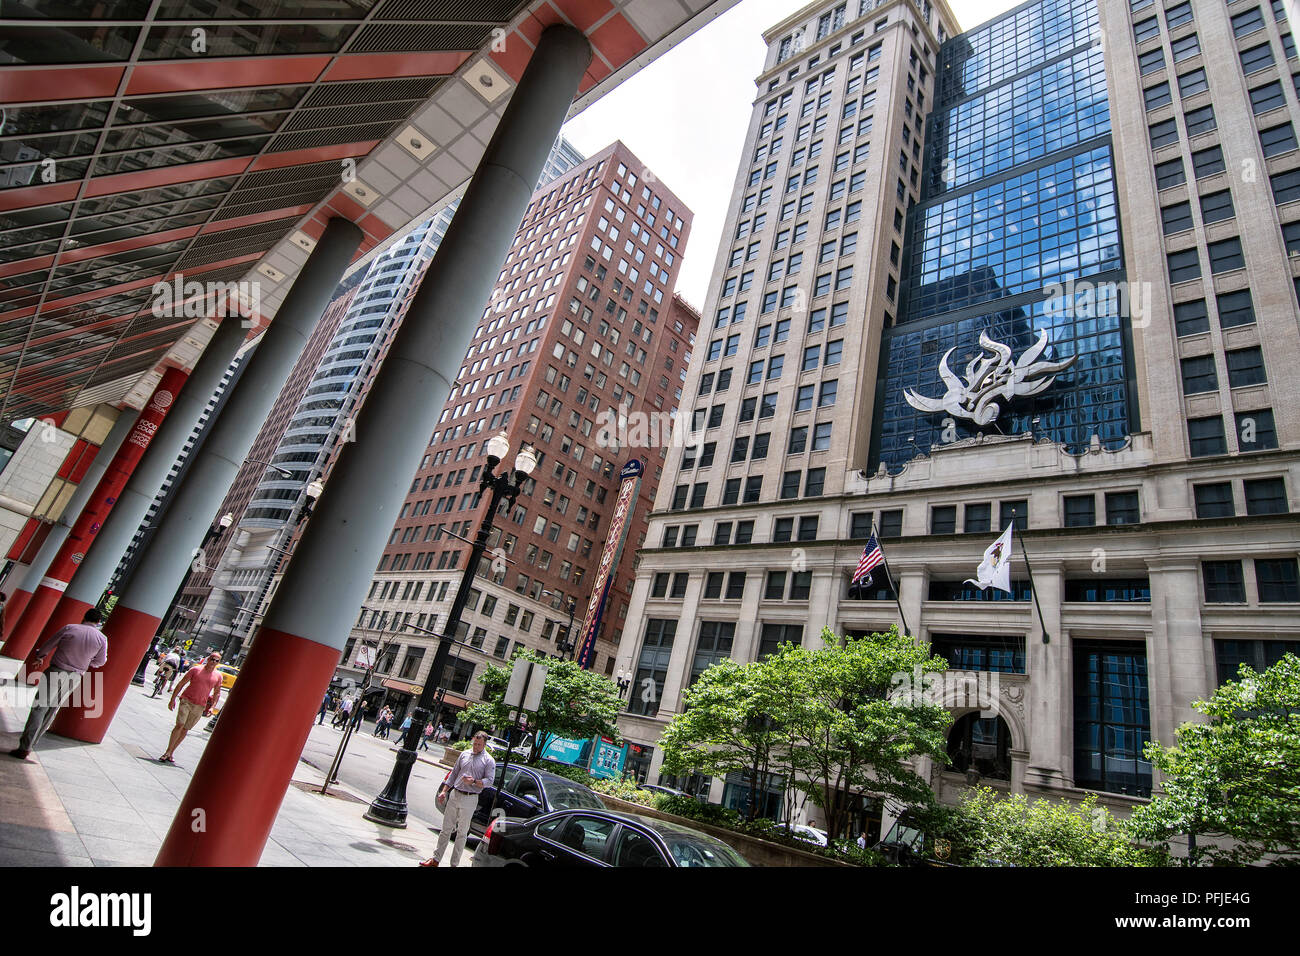 Llinois Abteilung Arbeit, Downtown Chicago, North LaSalle Blvd, Cadillac Palace Theater. Stockbild